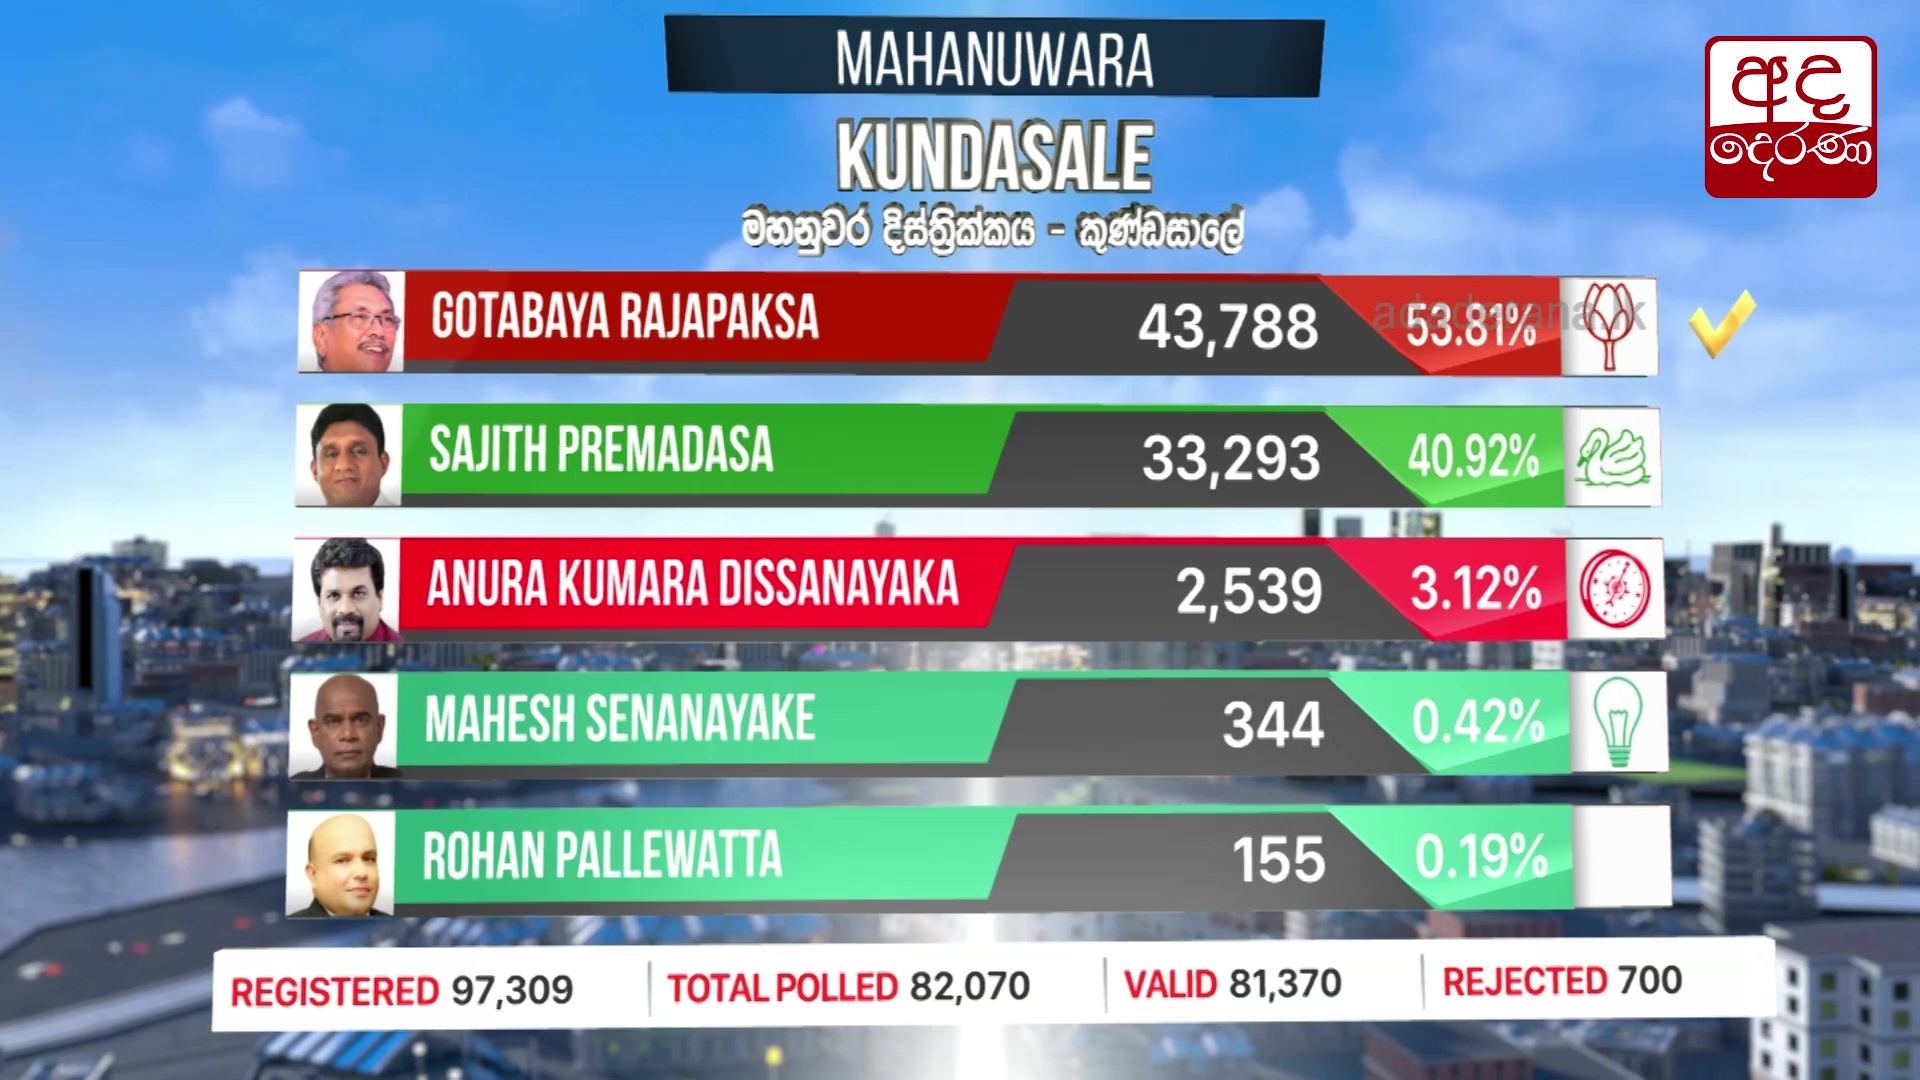 Presidential Election 2019: Kundasaale division results